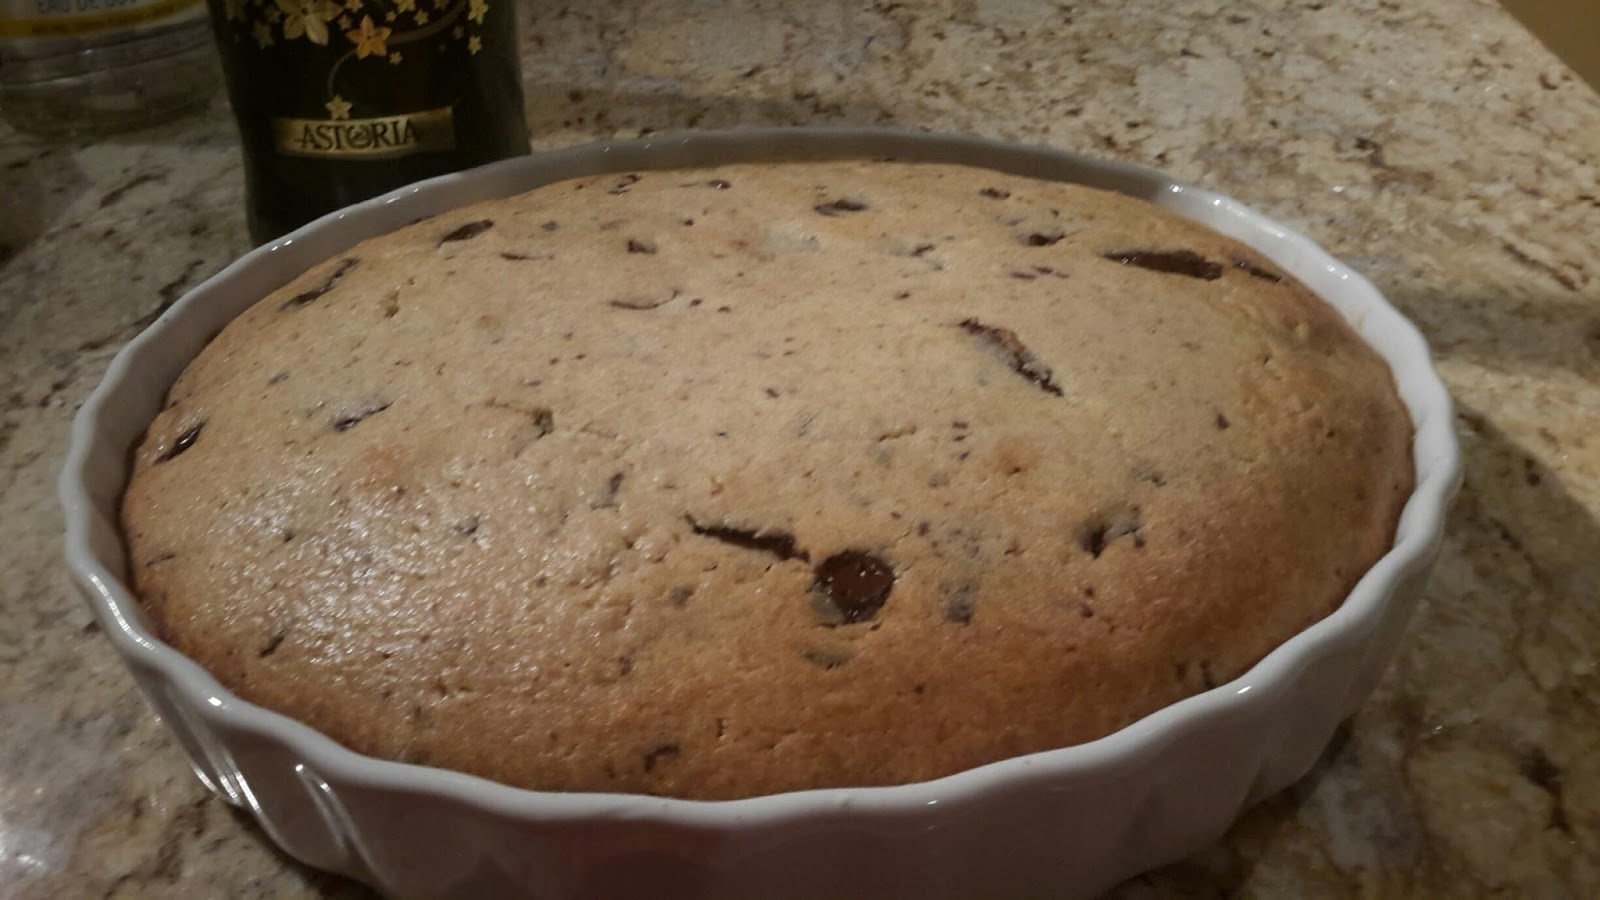 Mystery Lovers\' Kitchen: Rosemary olive oil and chocolate cake ...